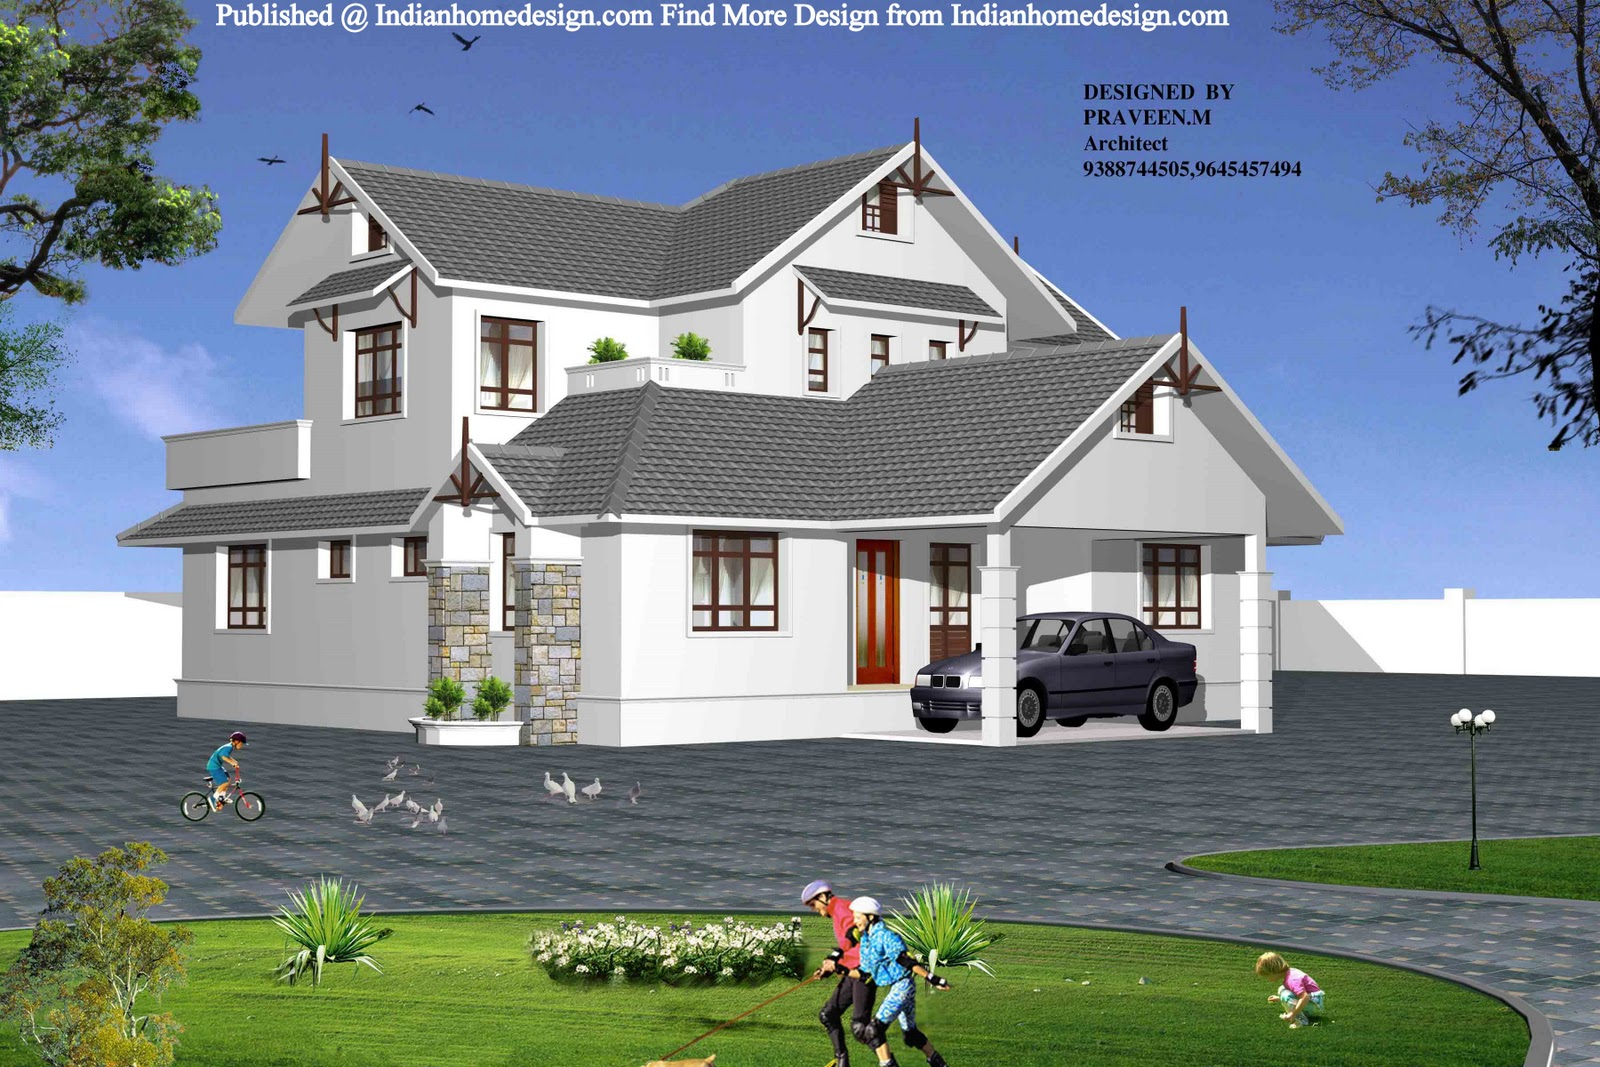 House photos and plans for Home planners house plans